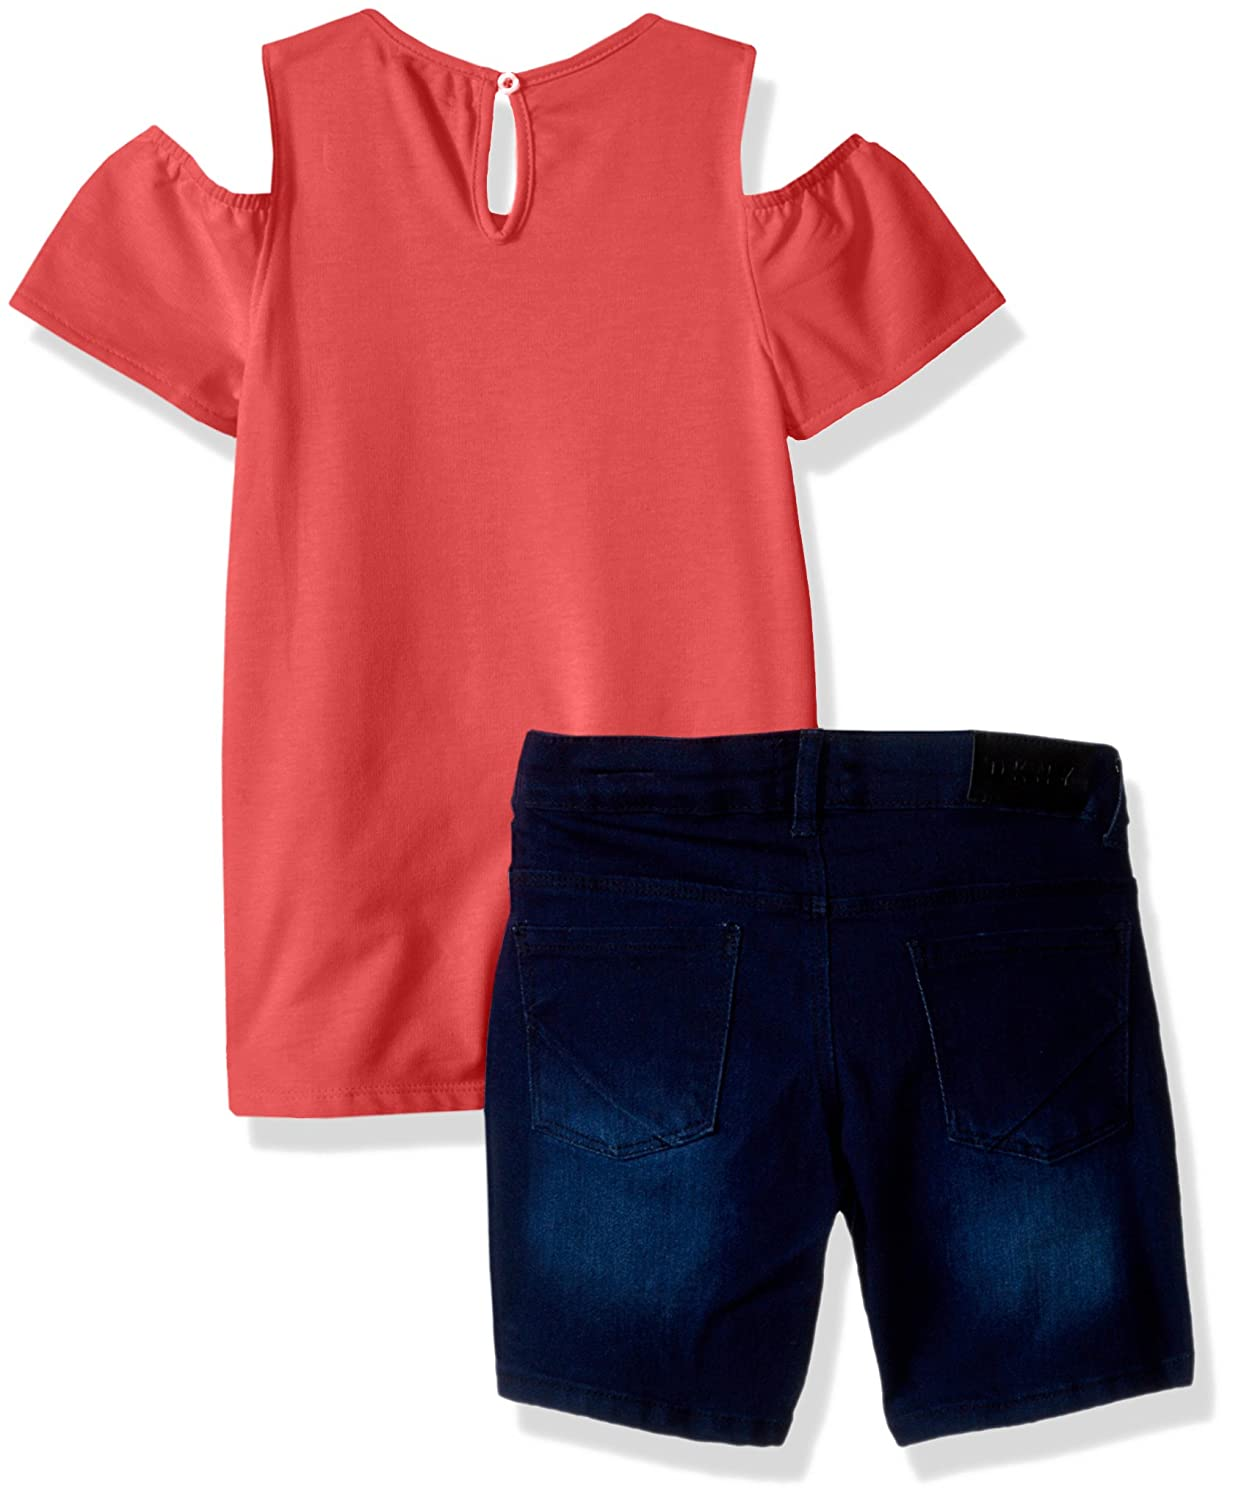 DKNY Girls Fashion Top and Short Set